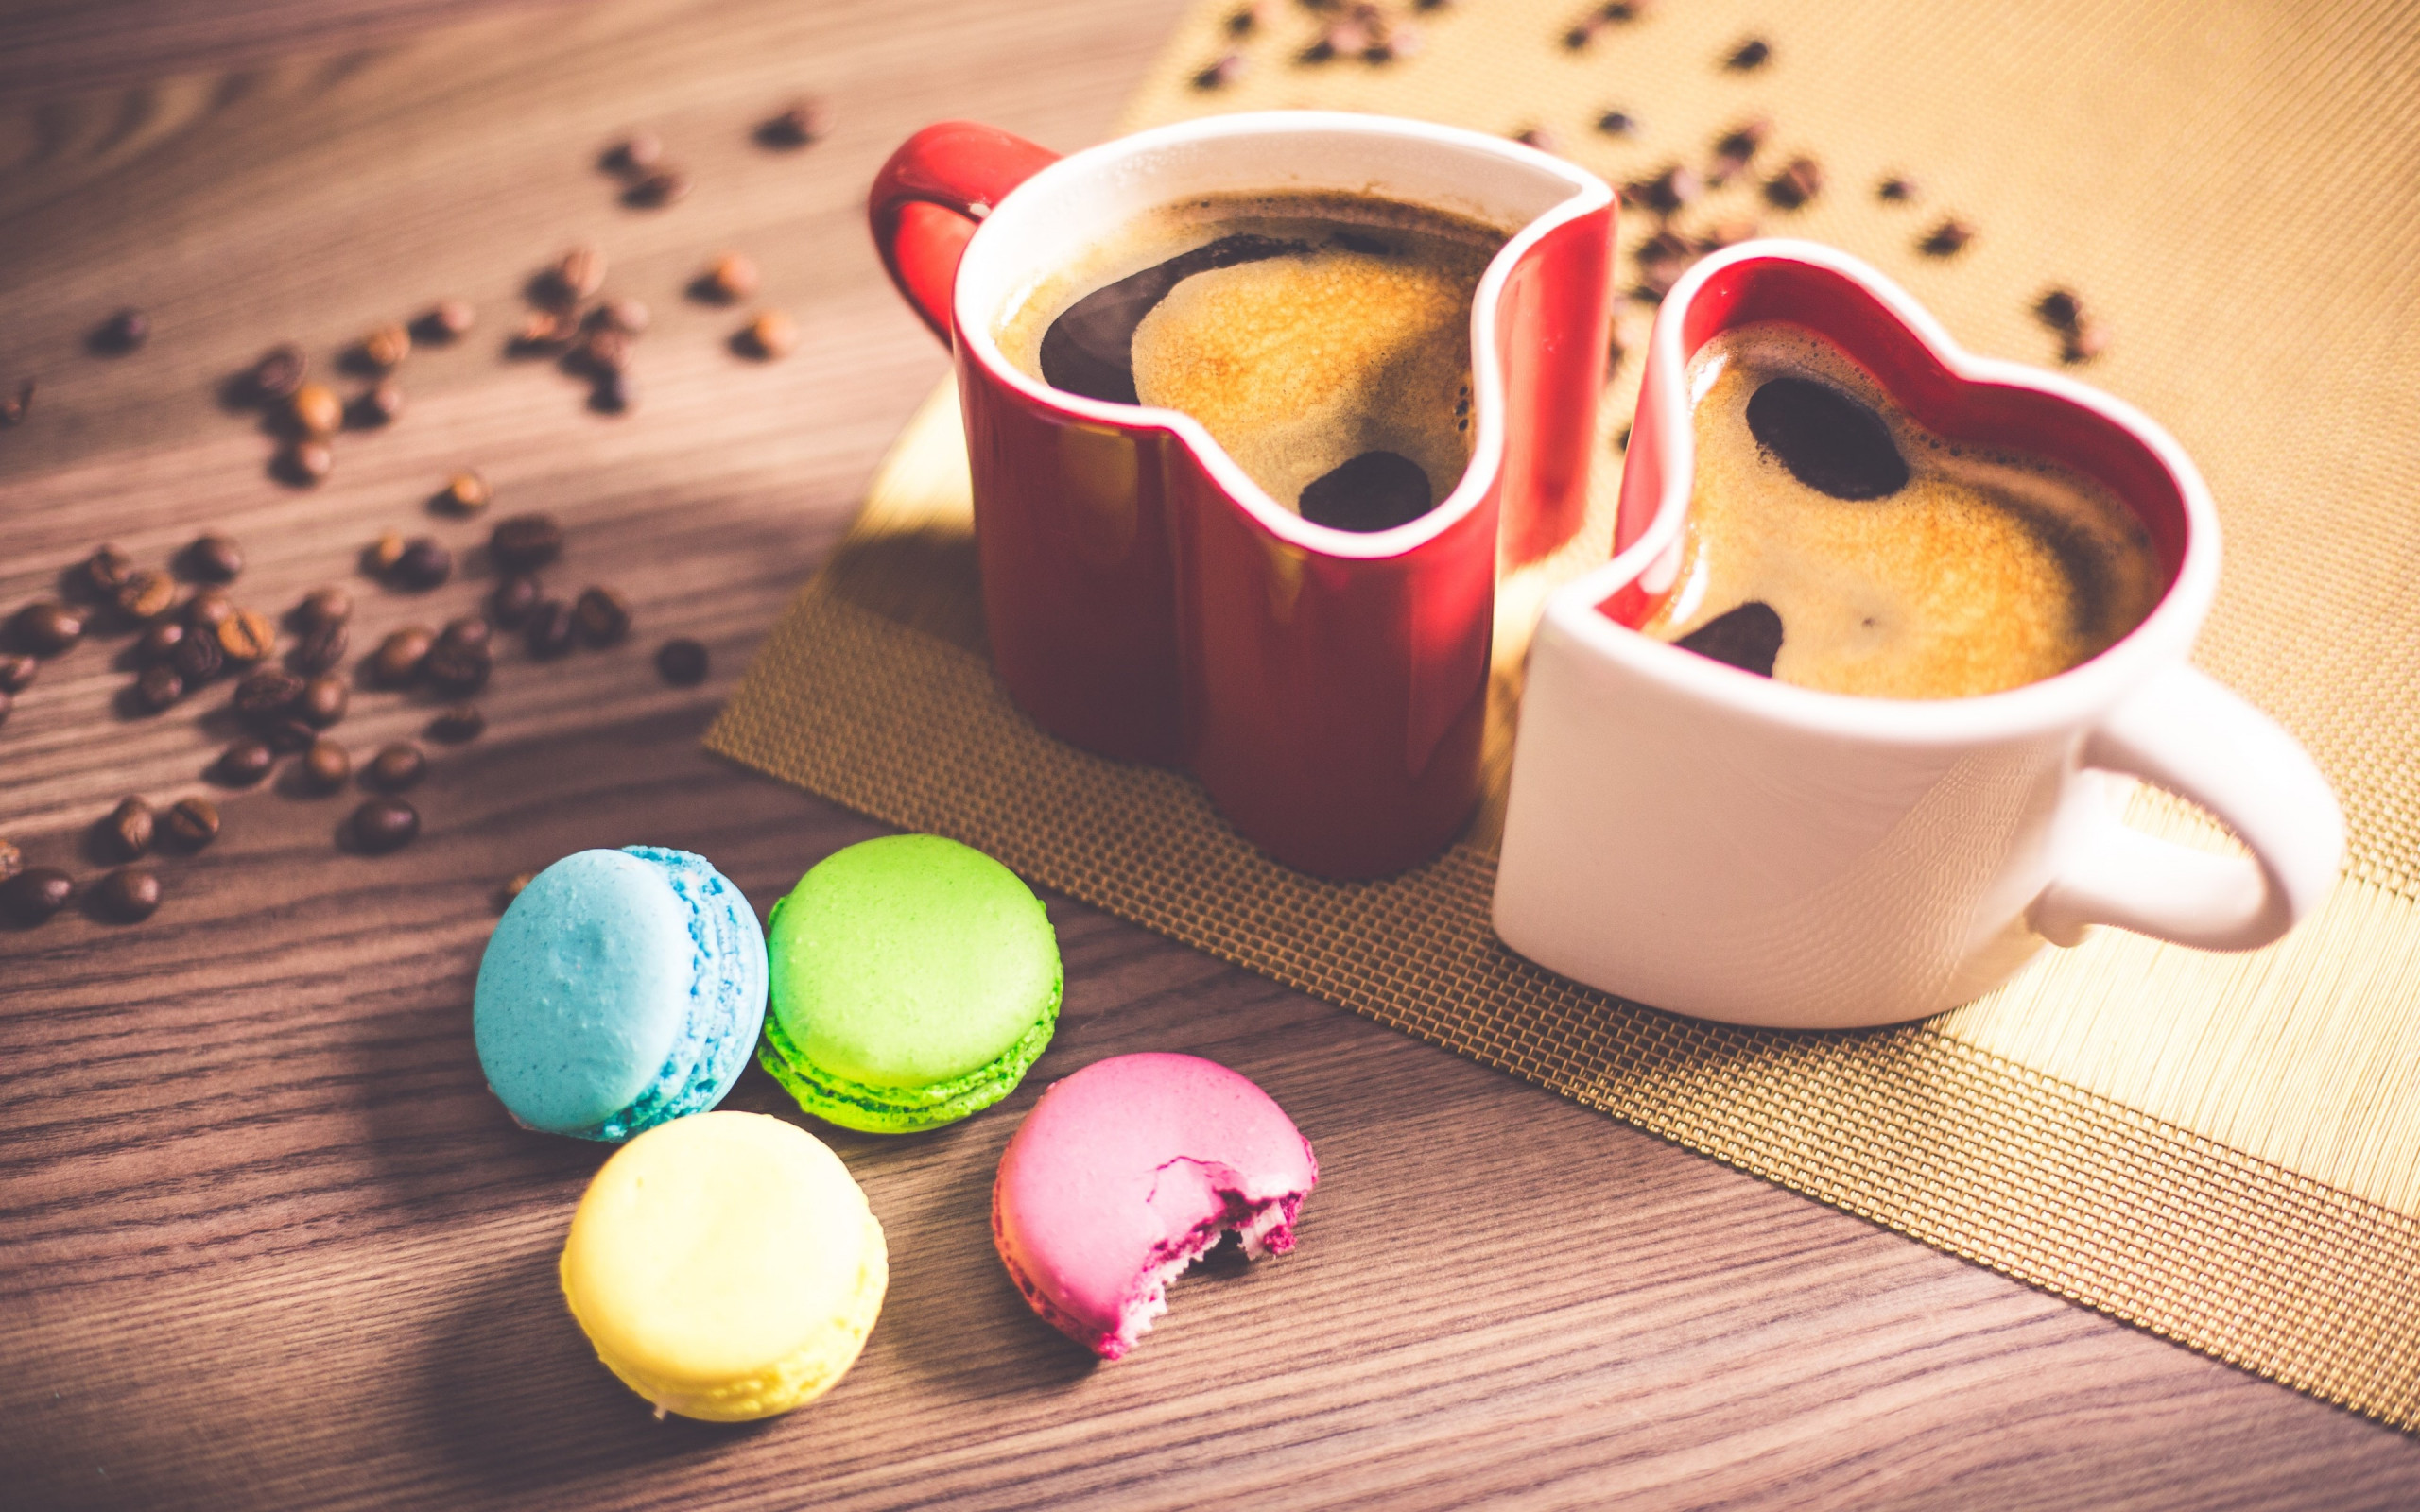 Coffee and macaroons wallpaper 2560x1600